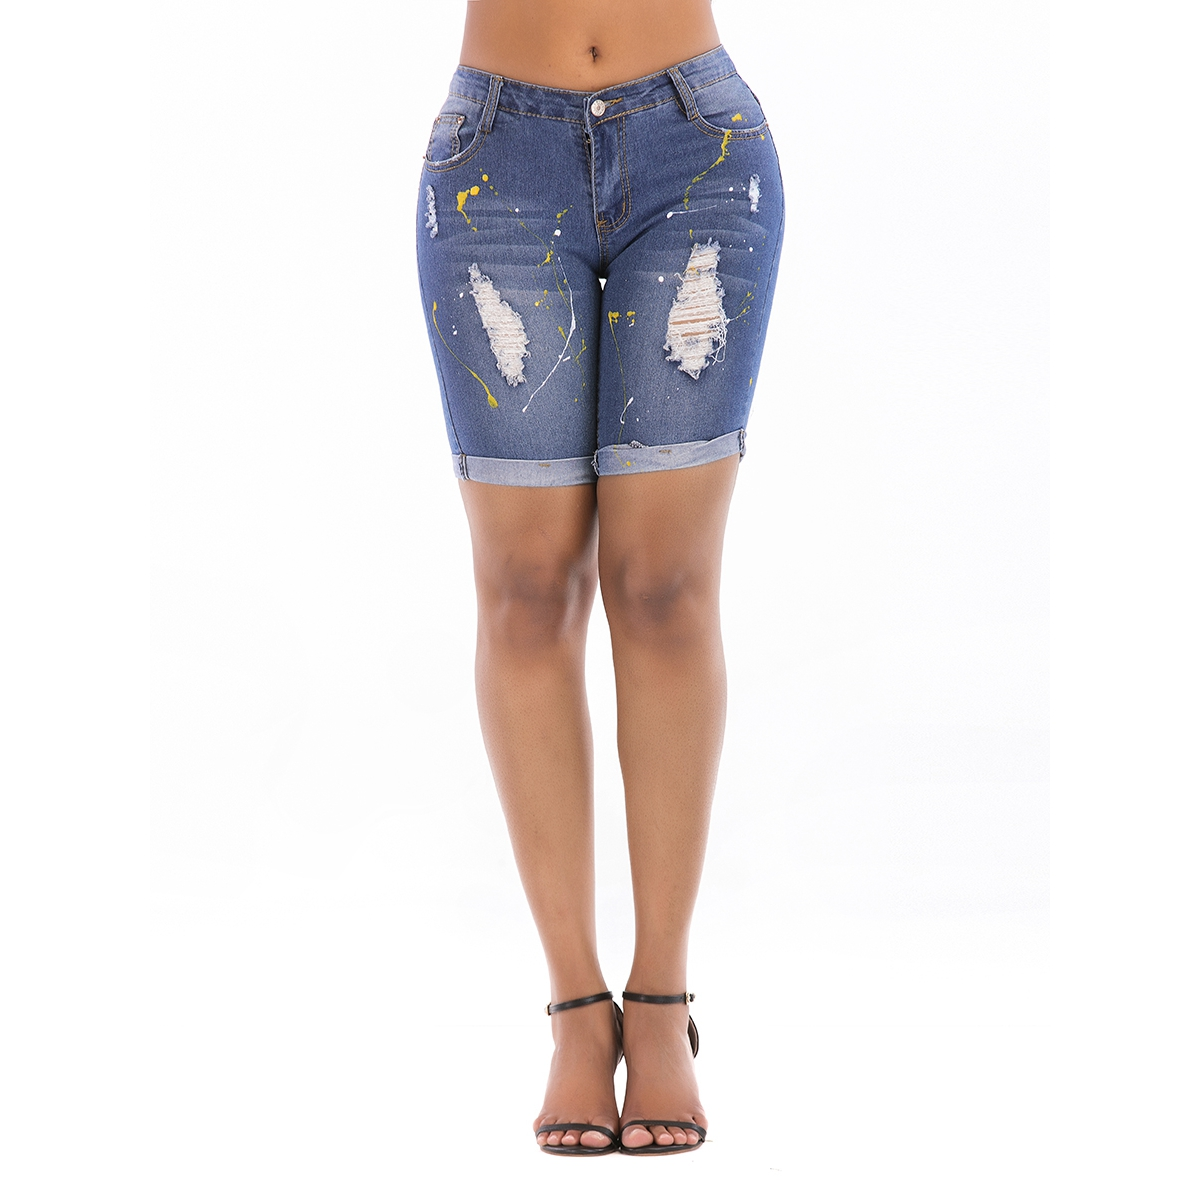 Summer Women's Handmade Paint Worn Trend Personality Jeans For Women Pants Breeches Overalls Vintage Torn Trousers